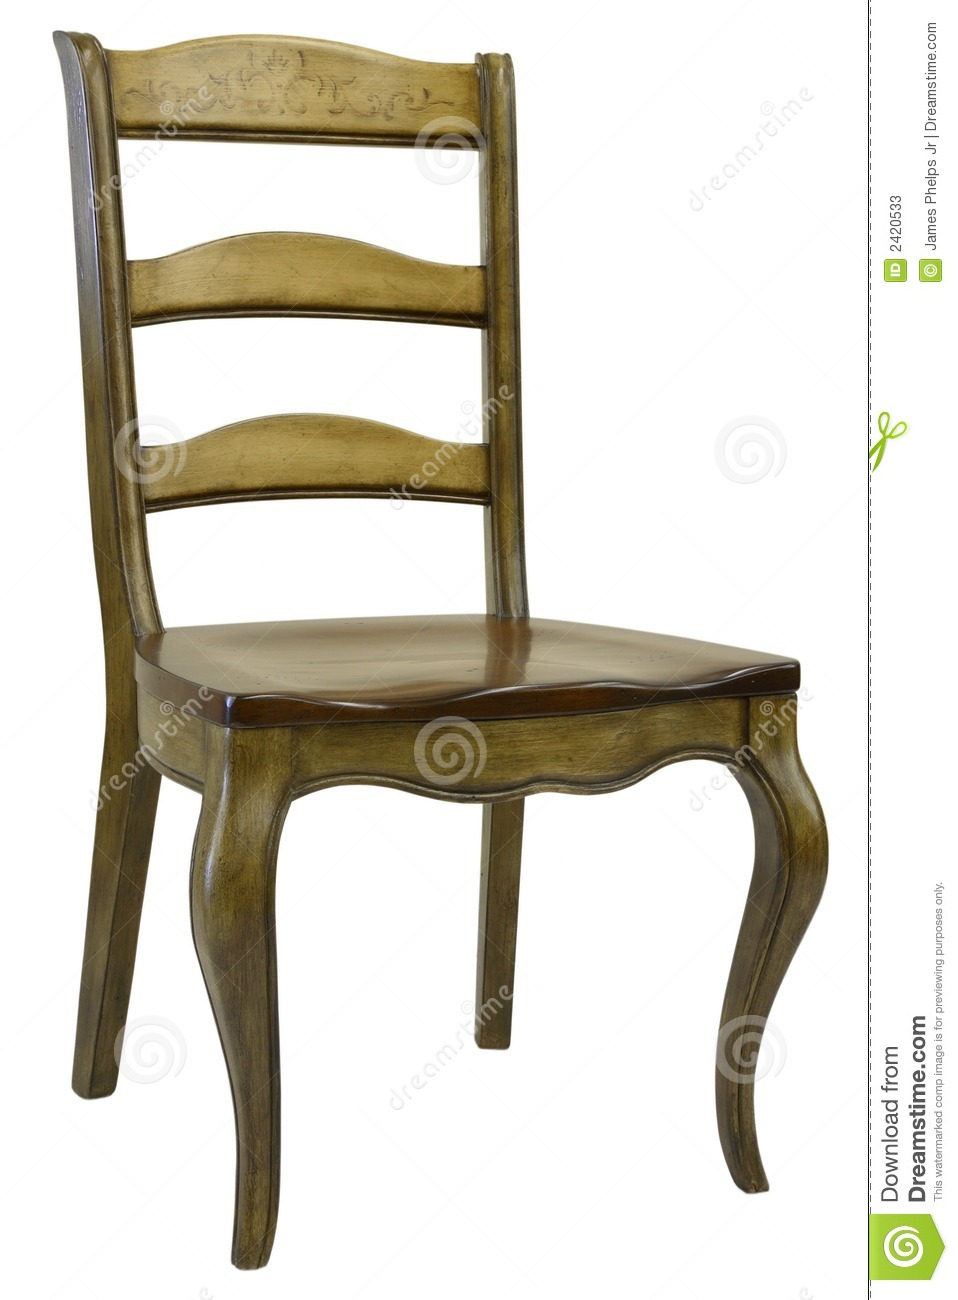 chair design antique french metal chairs dining stock image of home 2420533